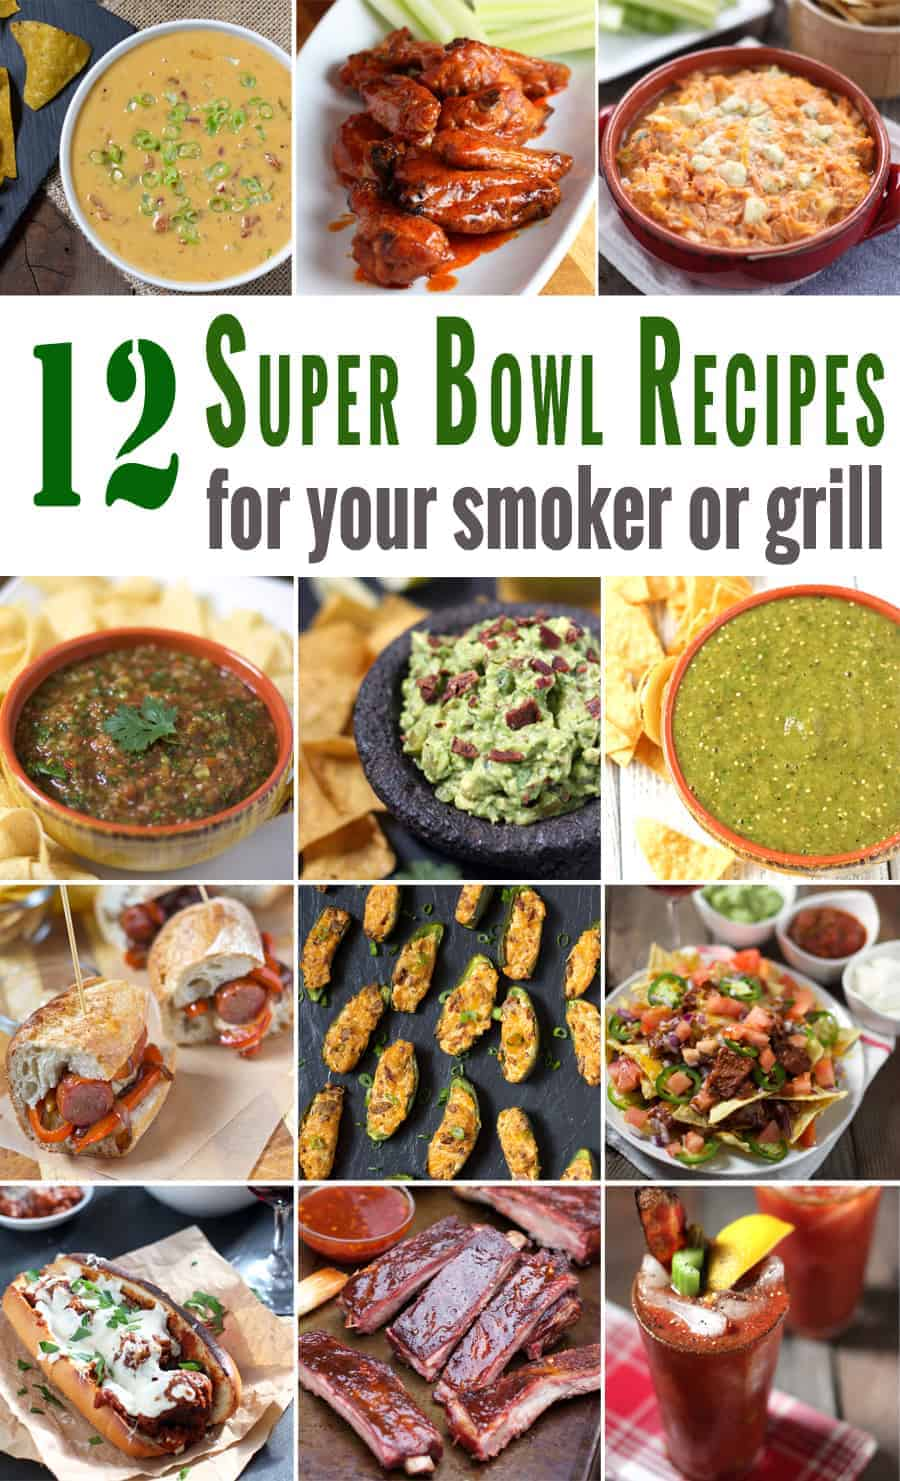 12 Game Day Recipes for your Smoker or Grill. From dips, to salsas, ribs, sandwiches, to cocktails, we've got you covered for Super Bowl or game day with these amazing appetizers!